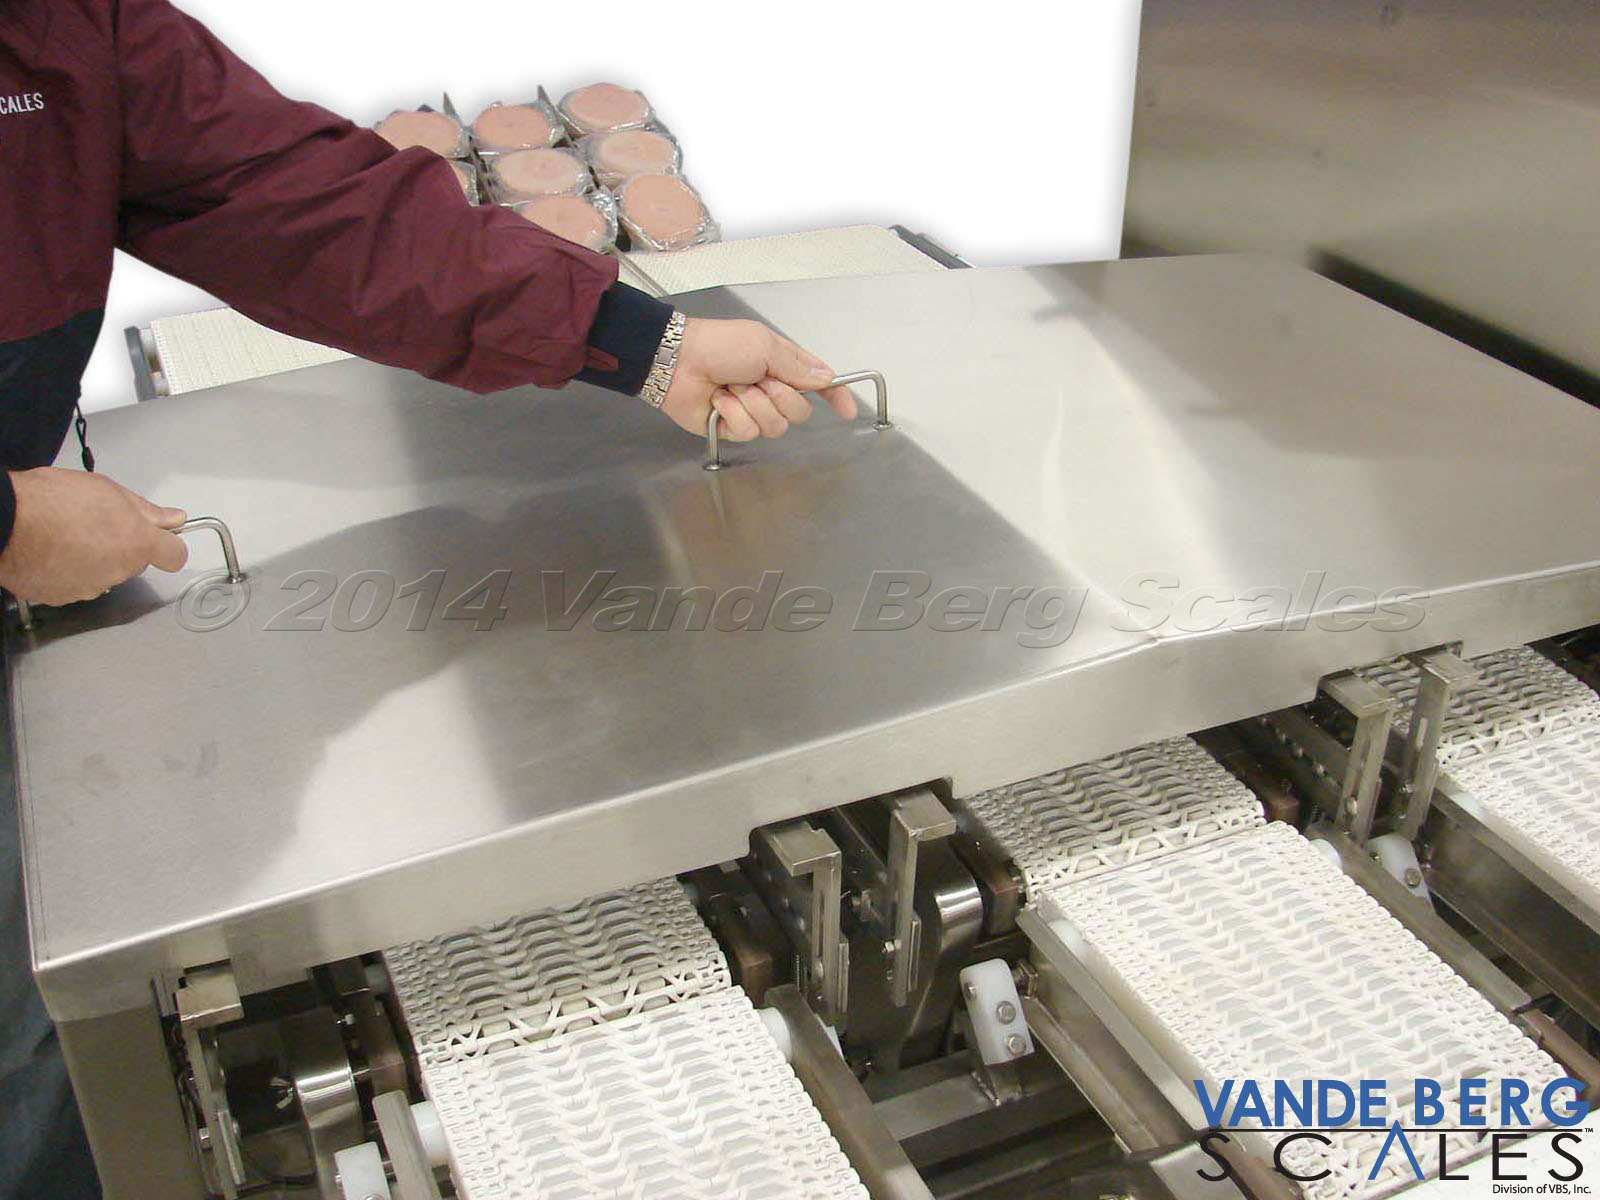 Large stainless steel draft shield ensures air movement does not affect weighments